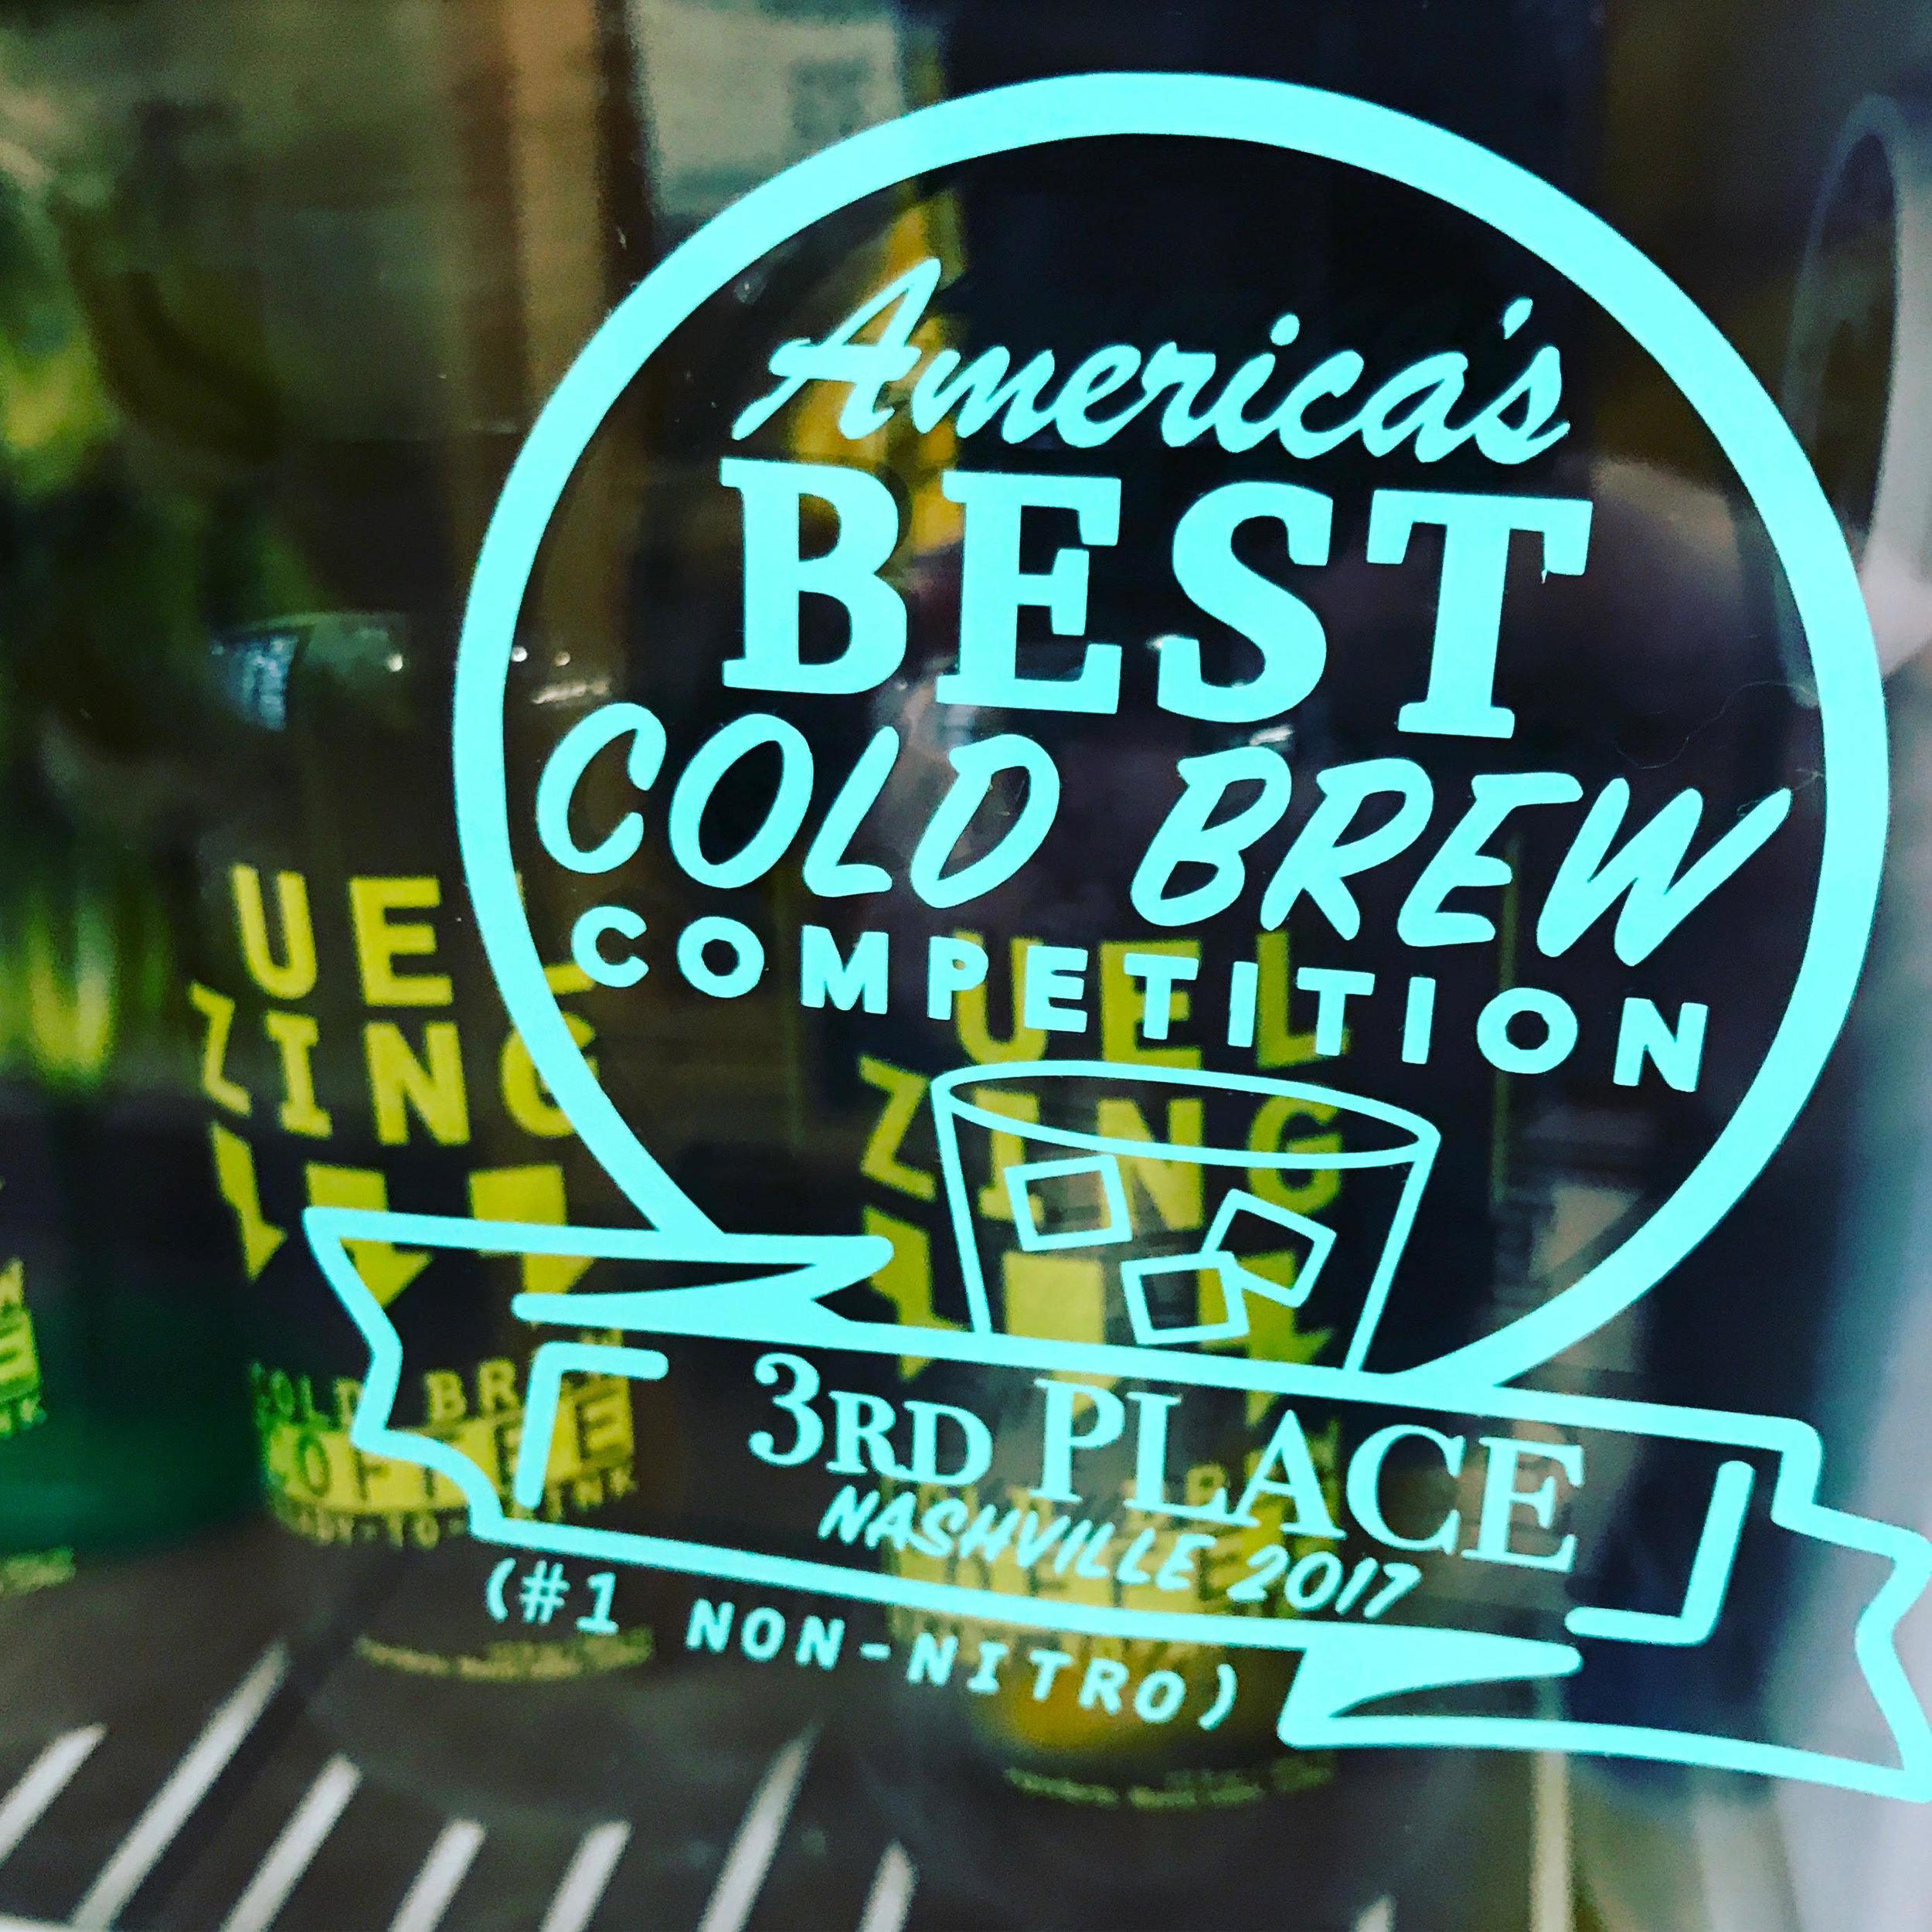 #1 non-nitro - We won 3rd overall best cold brew at a National Coffee Fest this year.